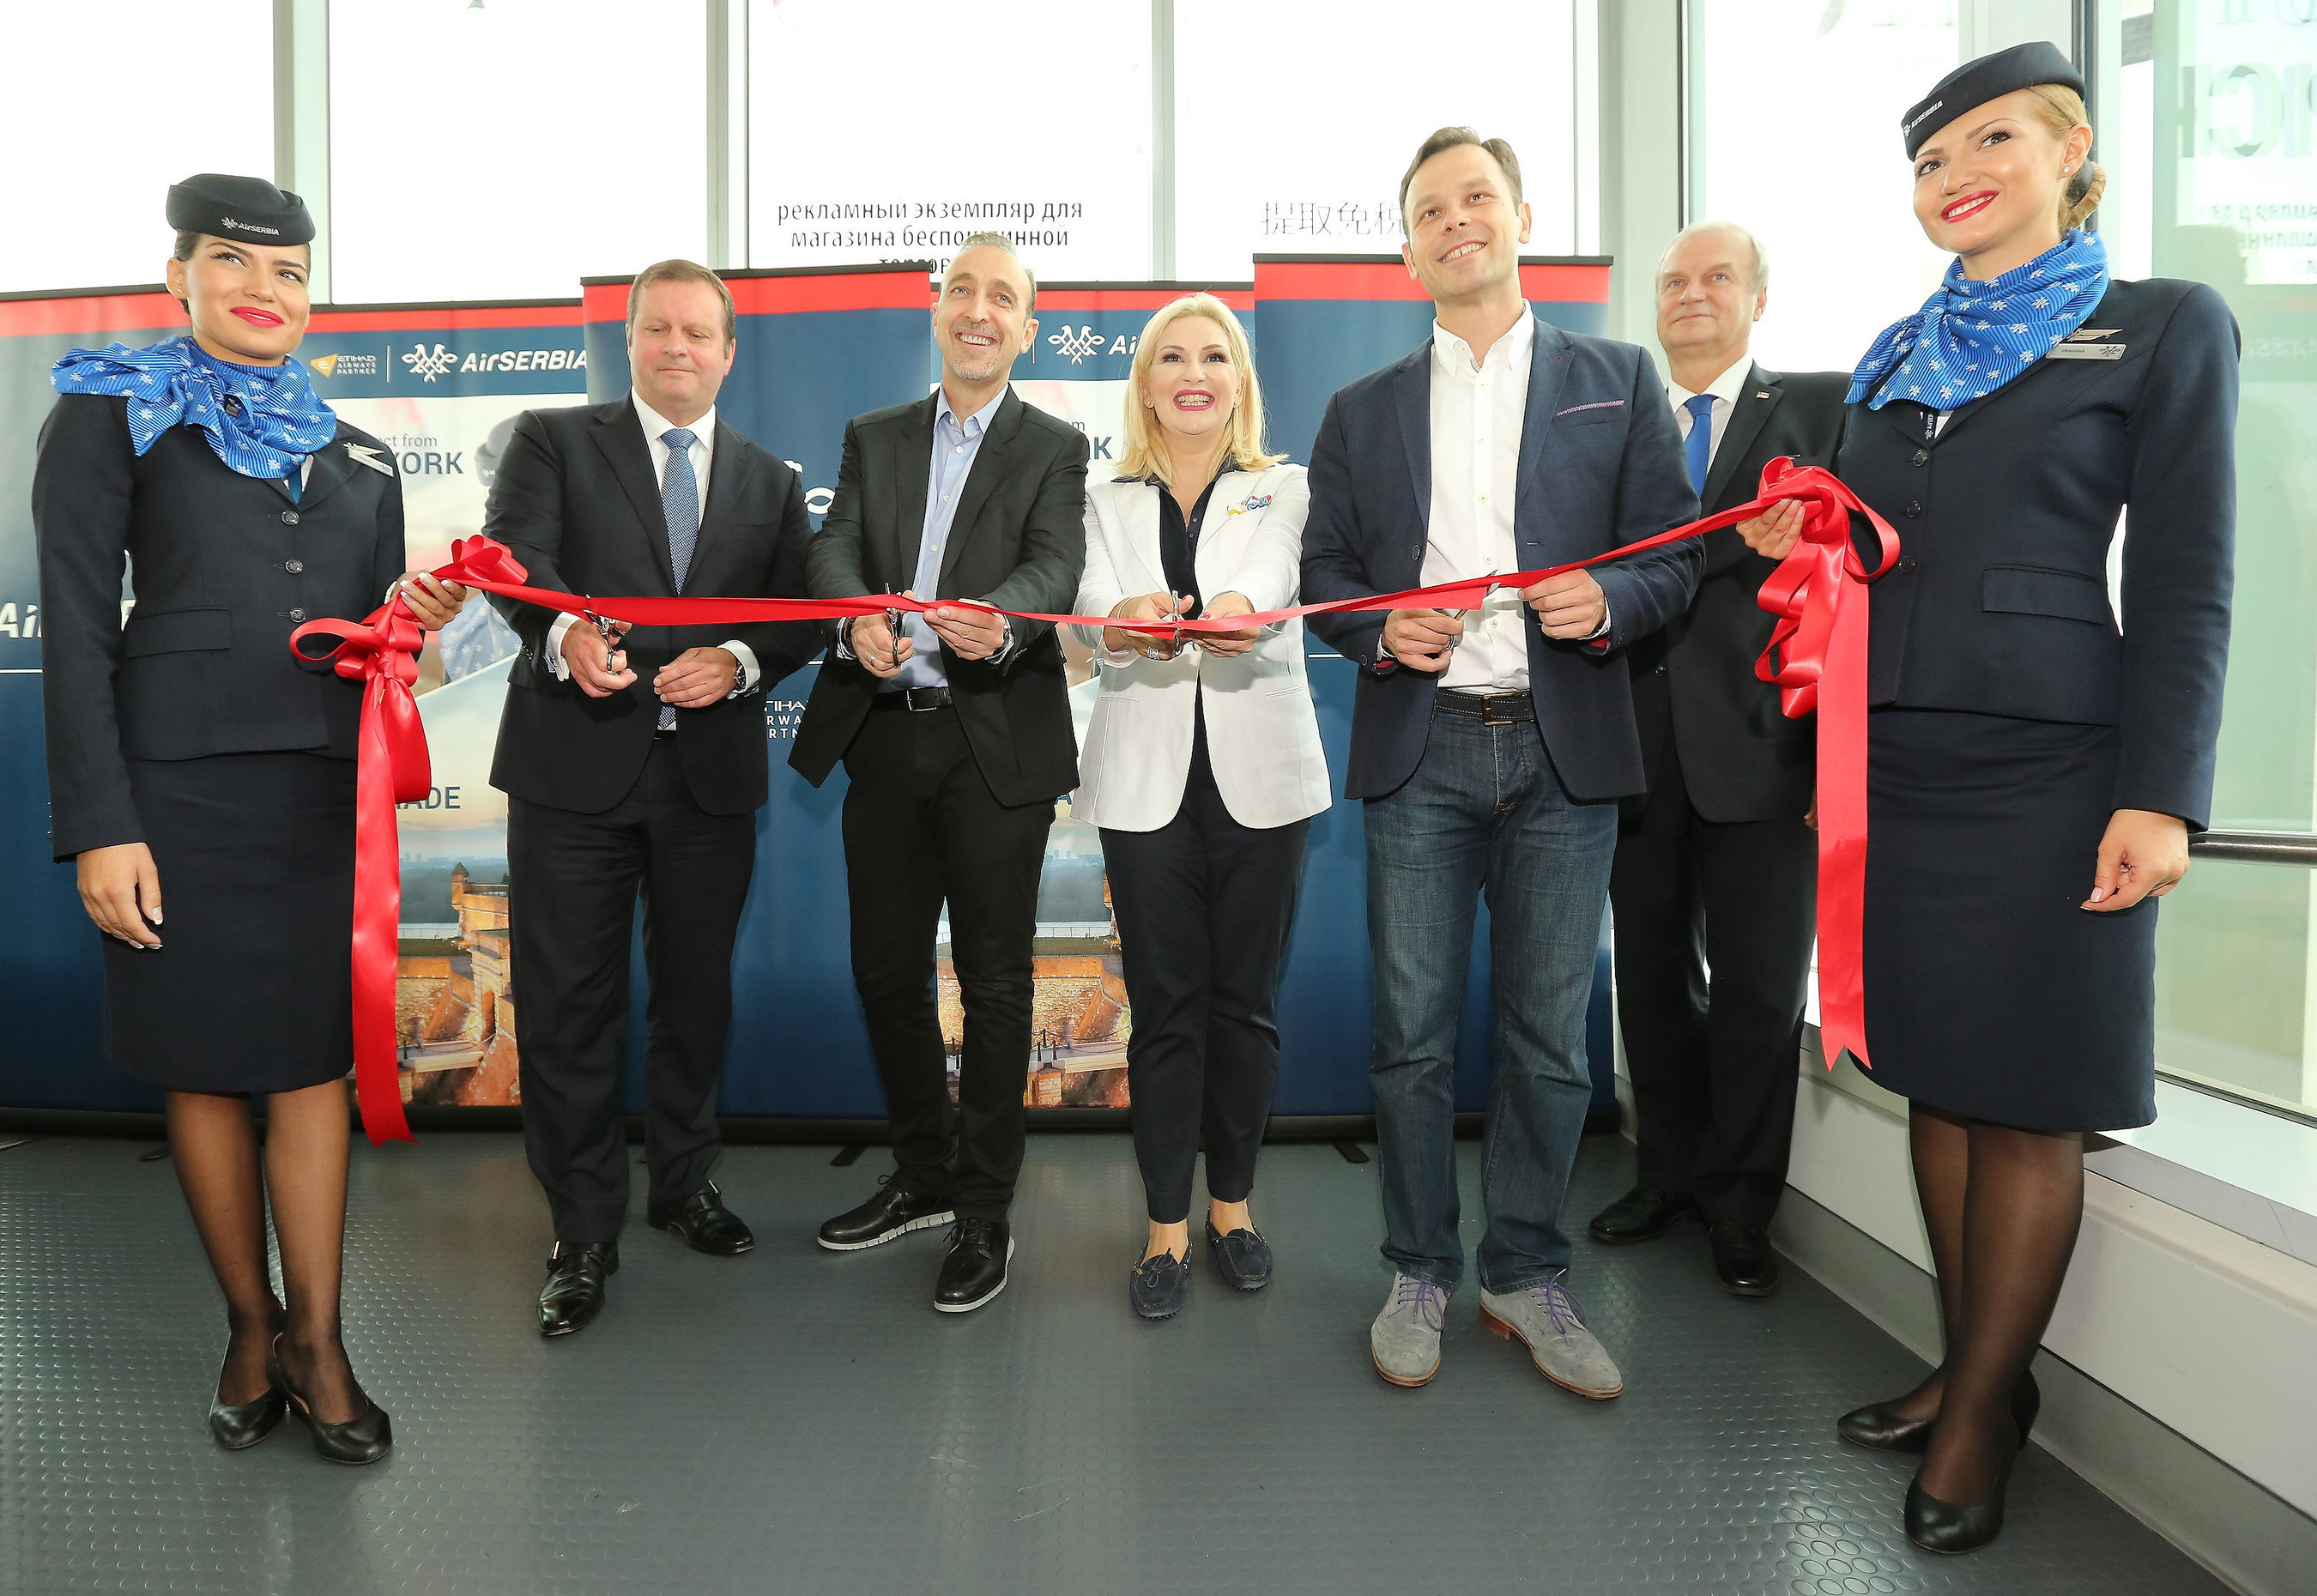 (From left) Gert-Jan de Graaf, President and Chief Executive Officer of JFK IAT, LLC; Dane Kondić, Chief Executive Officer of Air Serbia; Zorana Mihajlovic, Deputy Prime Minister of the Republic of Serbia and the Minister of Construction, Transport and Infrastructure; Siniša Mali, Chairman of the Supervisory Board of Air Serbia and the Mayor of Belgrade and Djerdj Matkovic, Ambassador of the Republic of Serbia to the United States, mark the arrival of Air Serbia's inaugural flight from Belgrade to New York with a ribbon cutting.